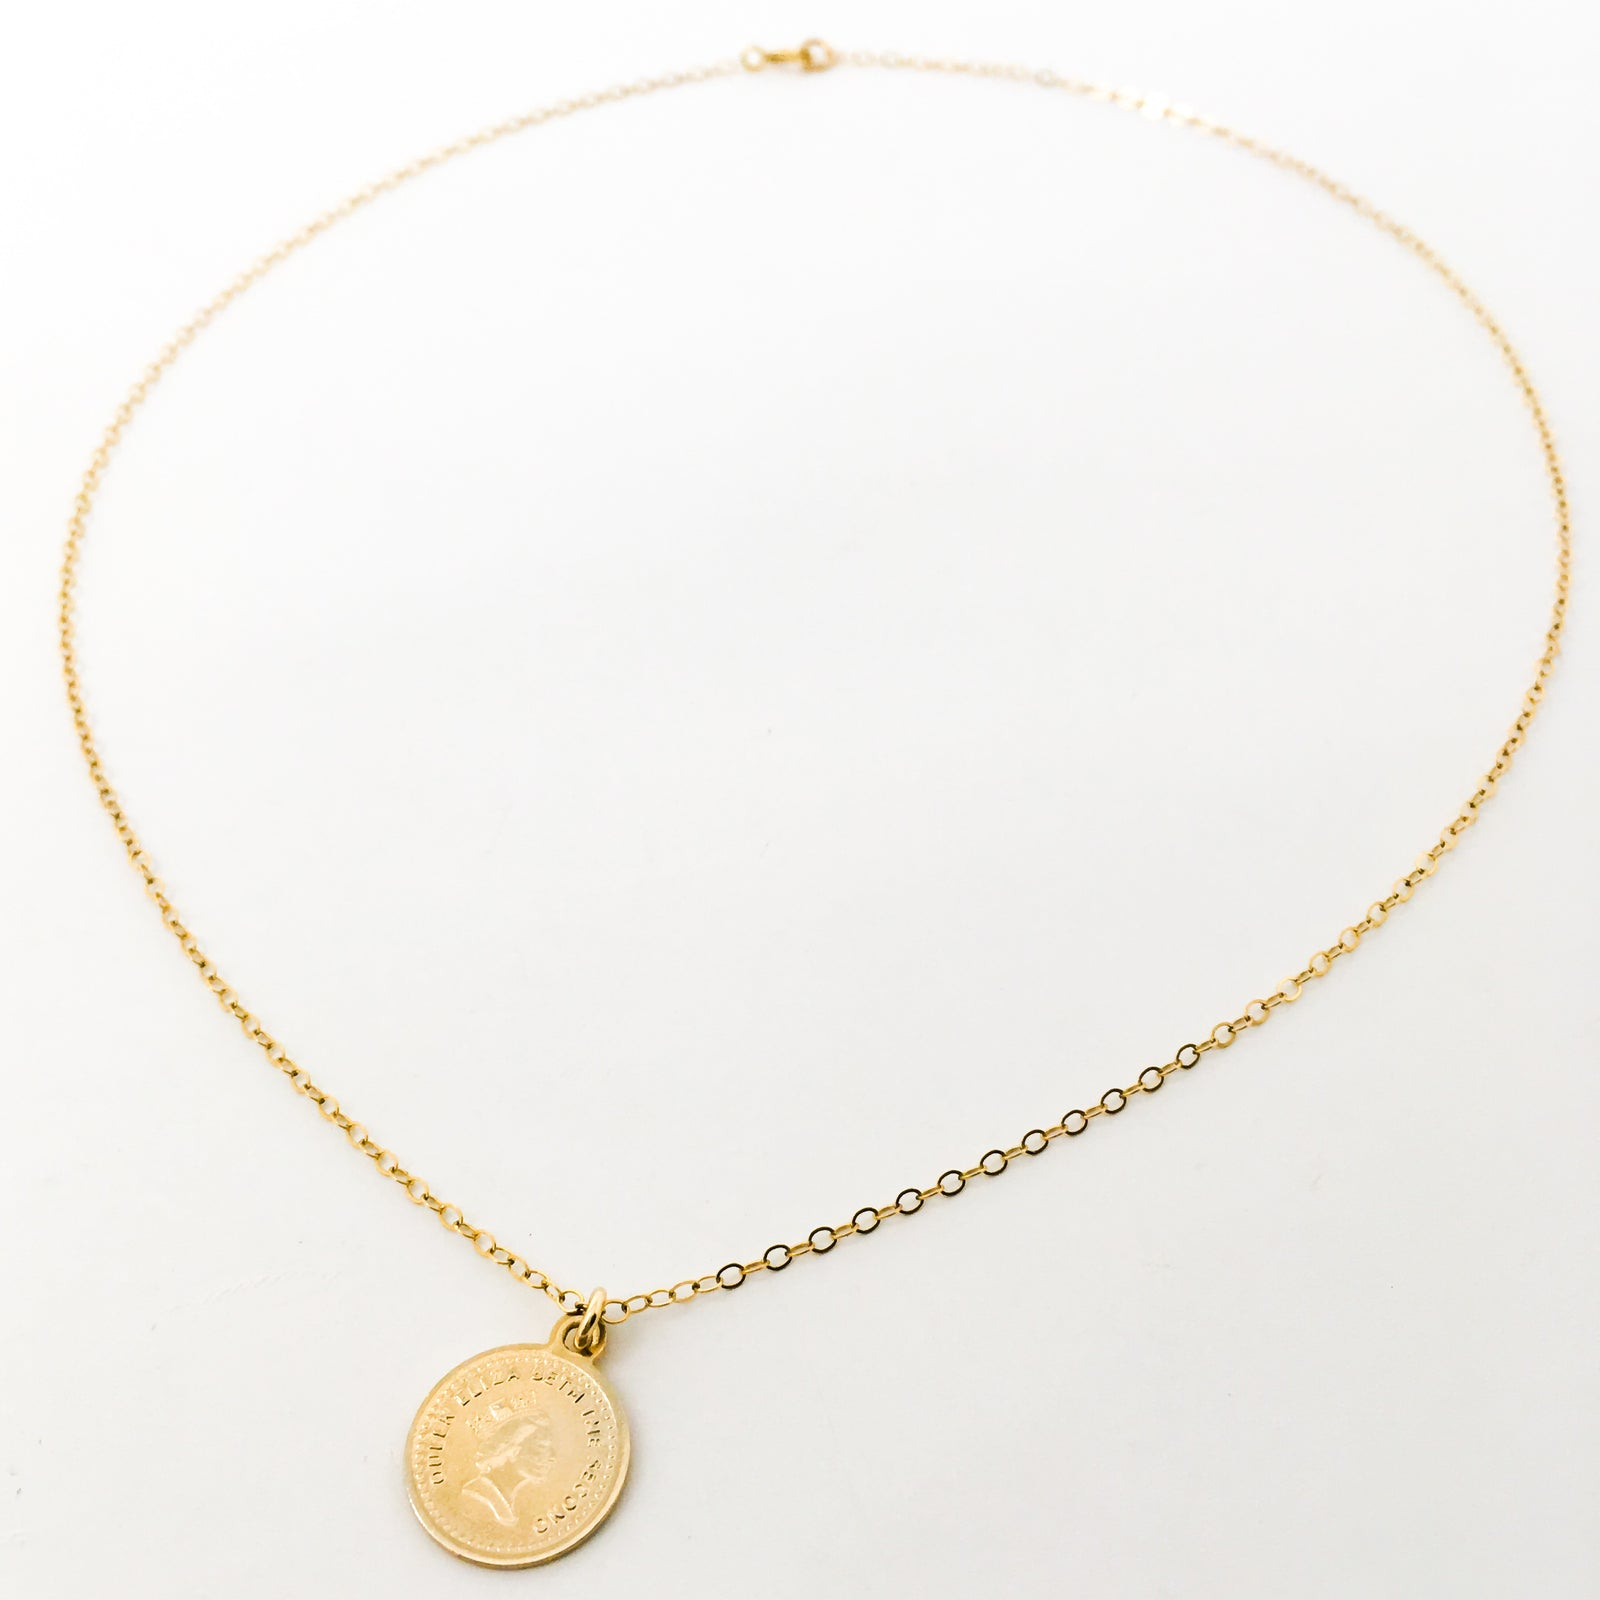 MINI DOUBLE-SIDED QUEEN ELIZABETH COIN NECKLACE | 14K GOLD-FILLED